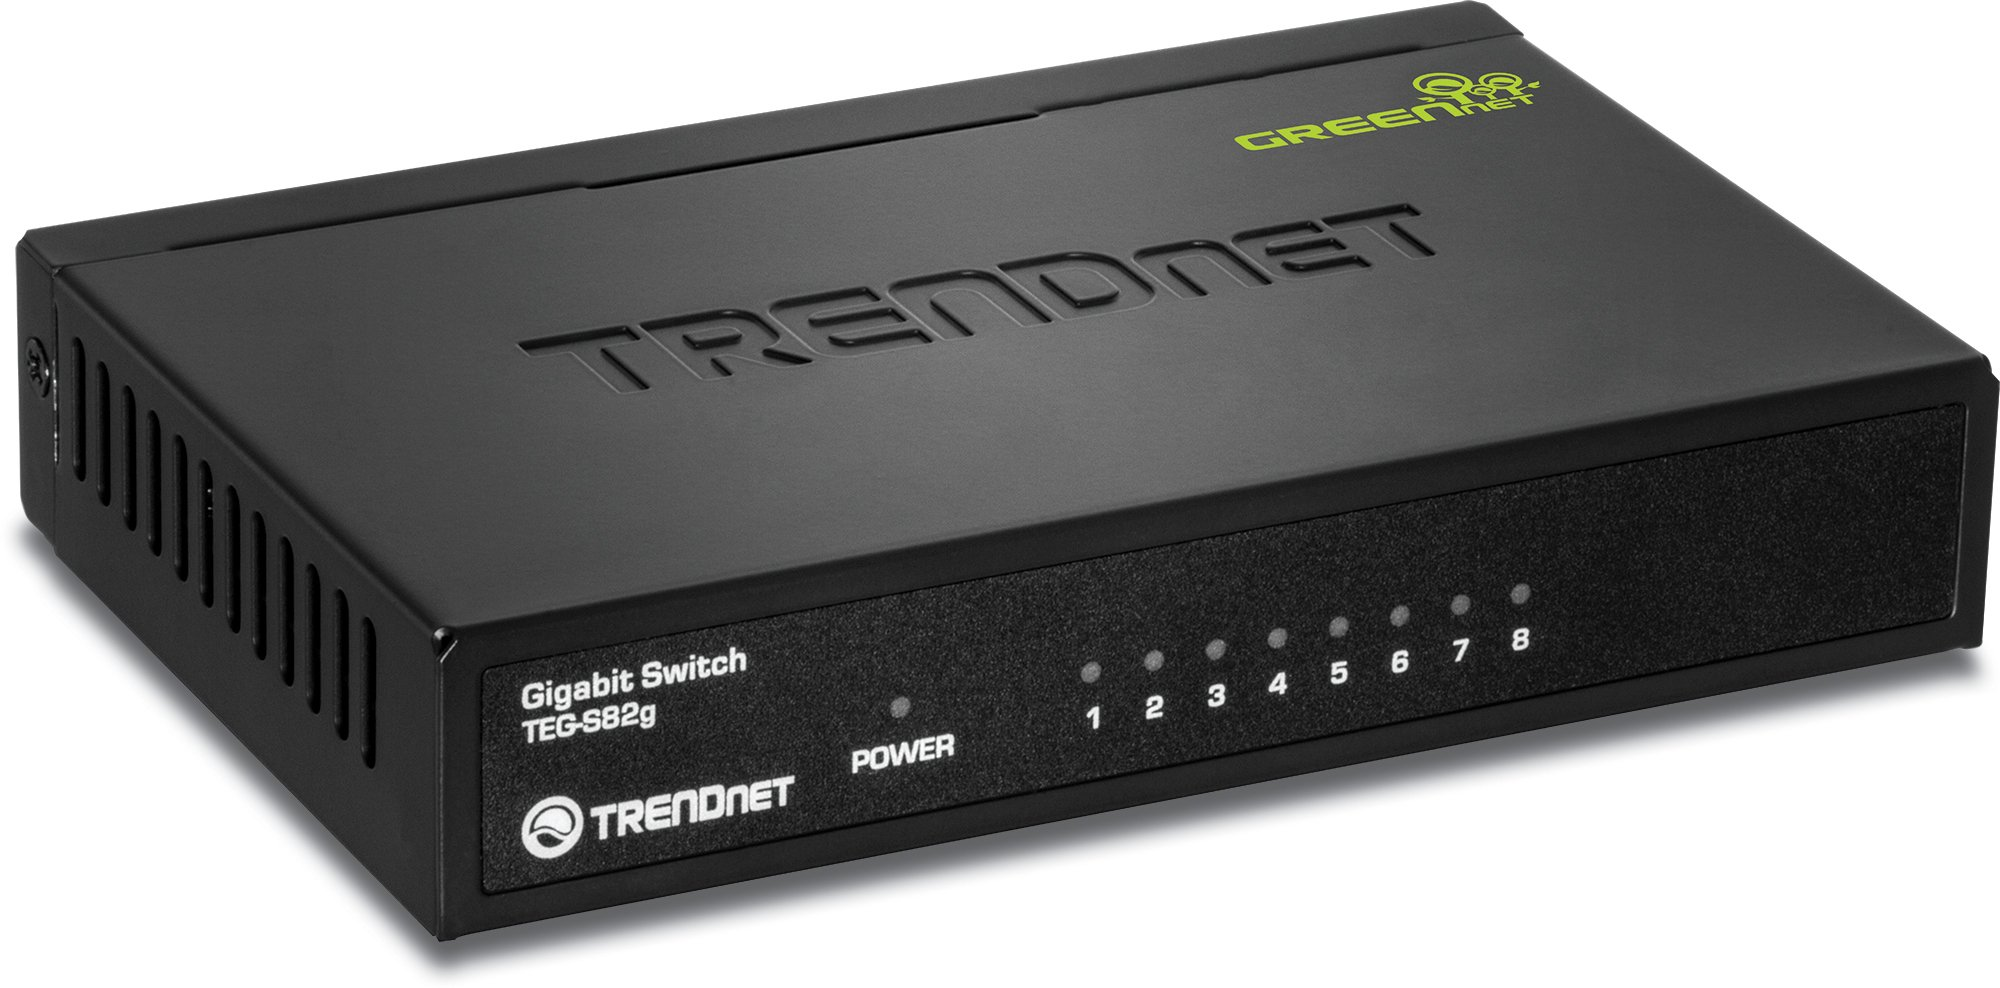 TRENDnet 8-Port Gigabit GREENnet Switch, 10/100/1000 Mbps, 16 Gbps Switching Capacity, Metal Housing, Plug & Play, Lifetime Protection, TEG-S82G